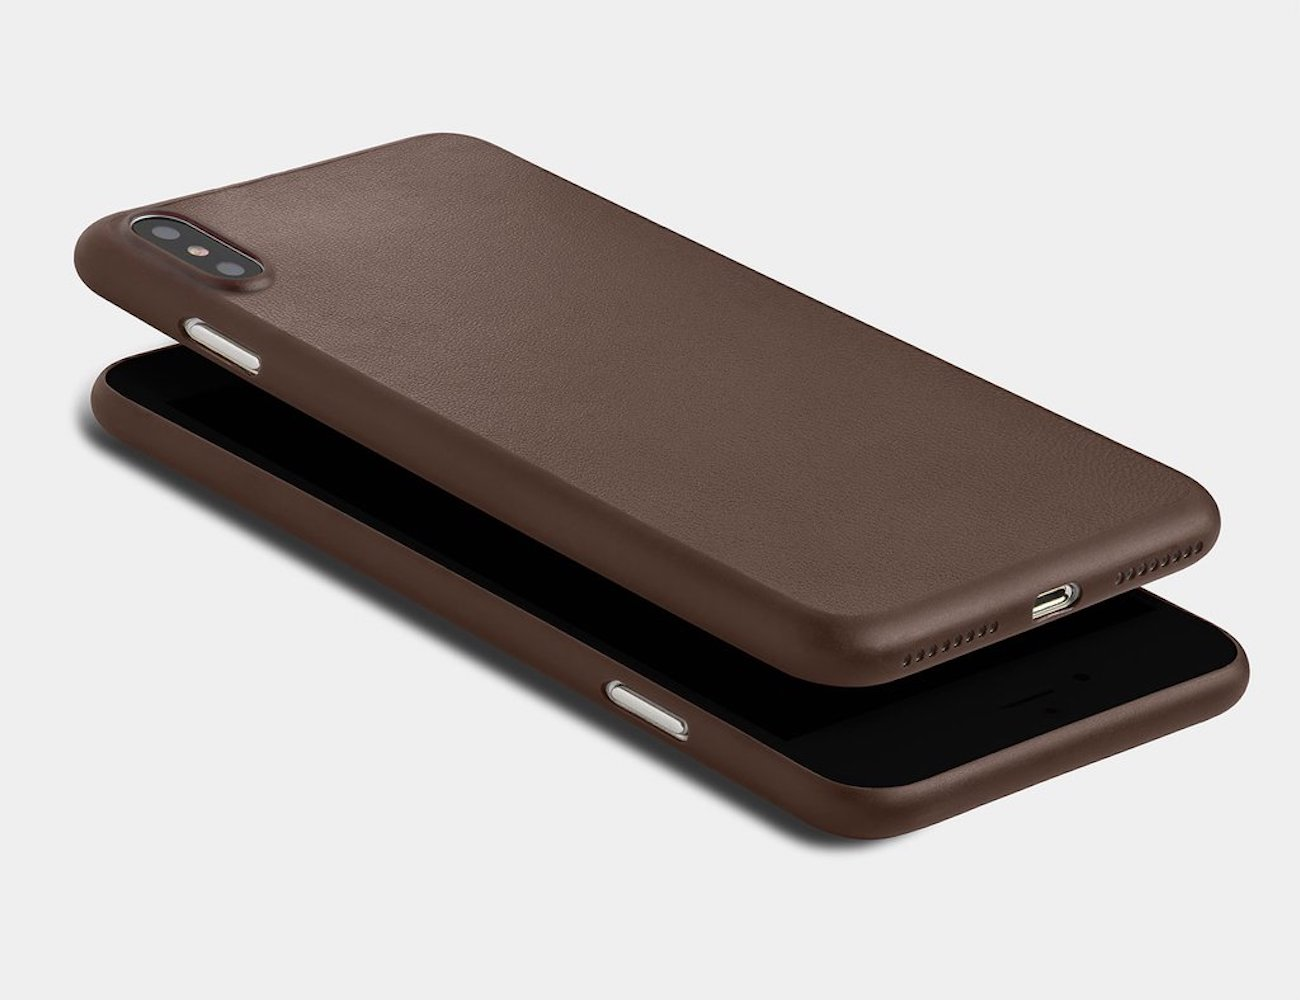 leather iphone case totallee thin leather iphone x 187 gadget flow 12563